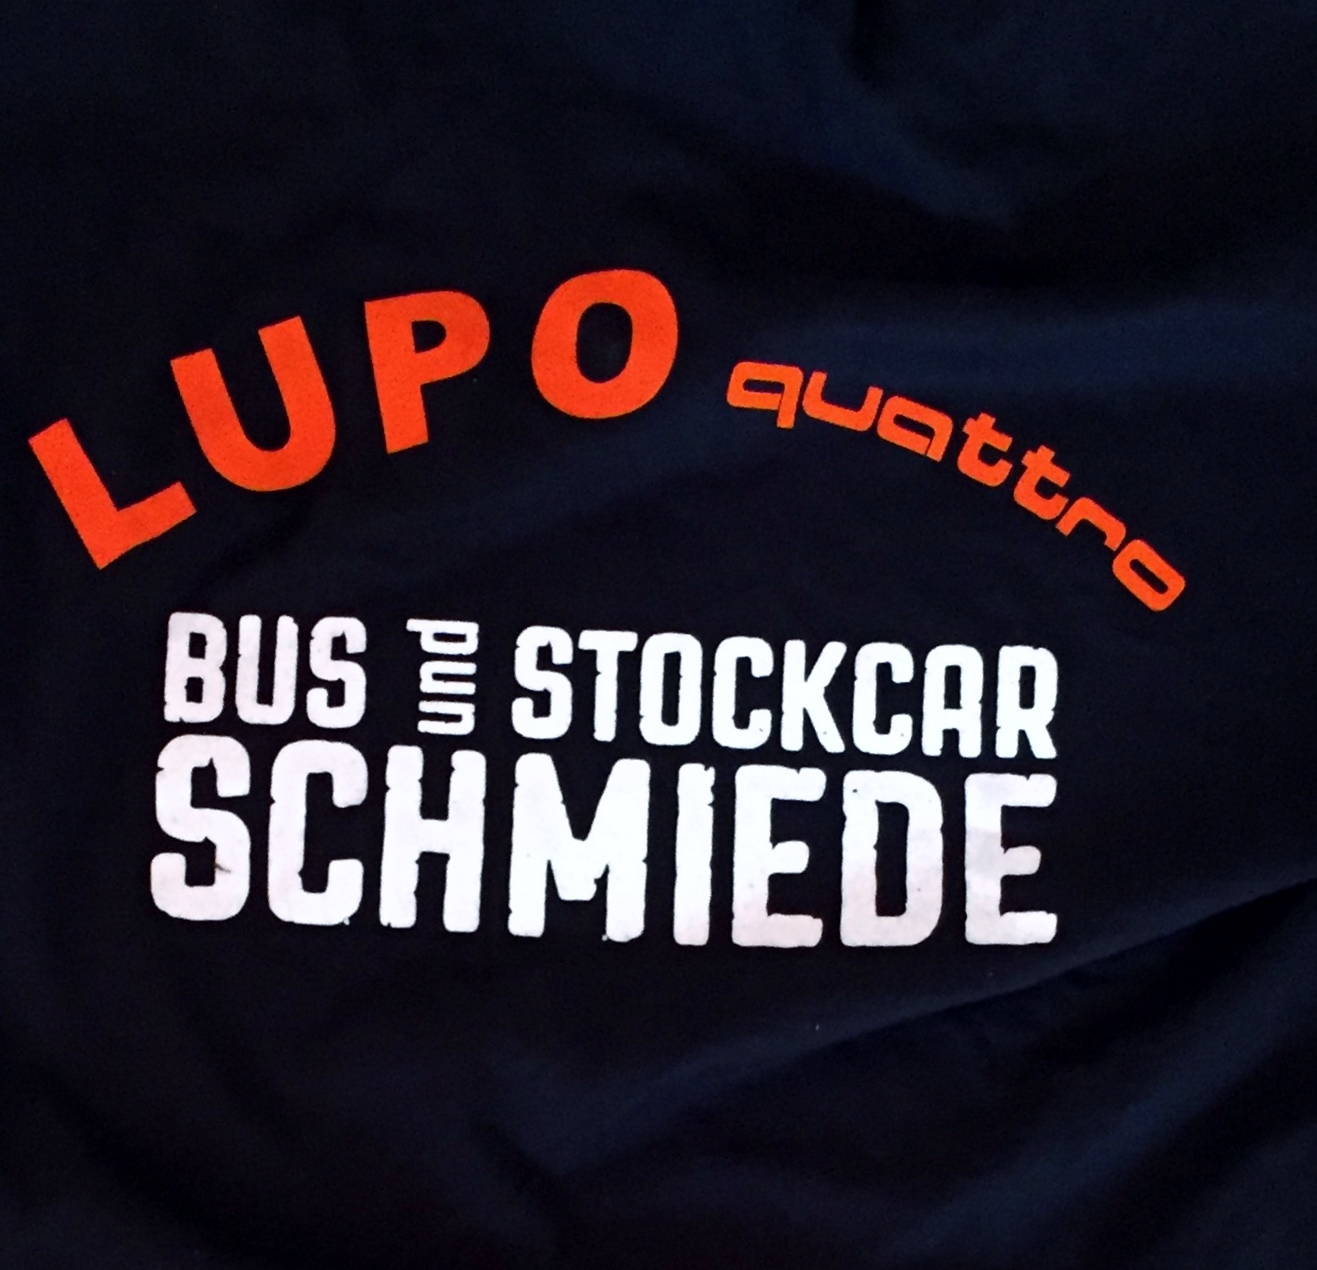 bus-stockcarschmiede